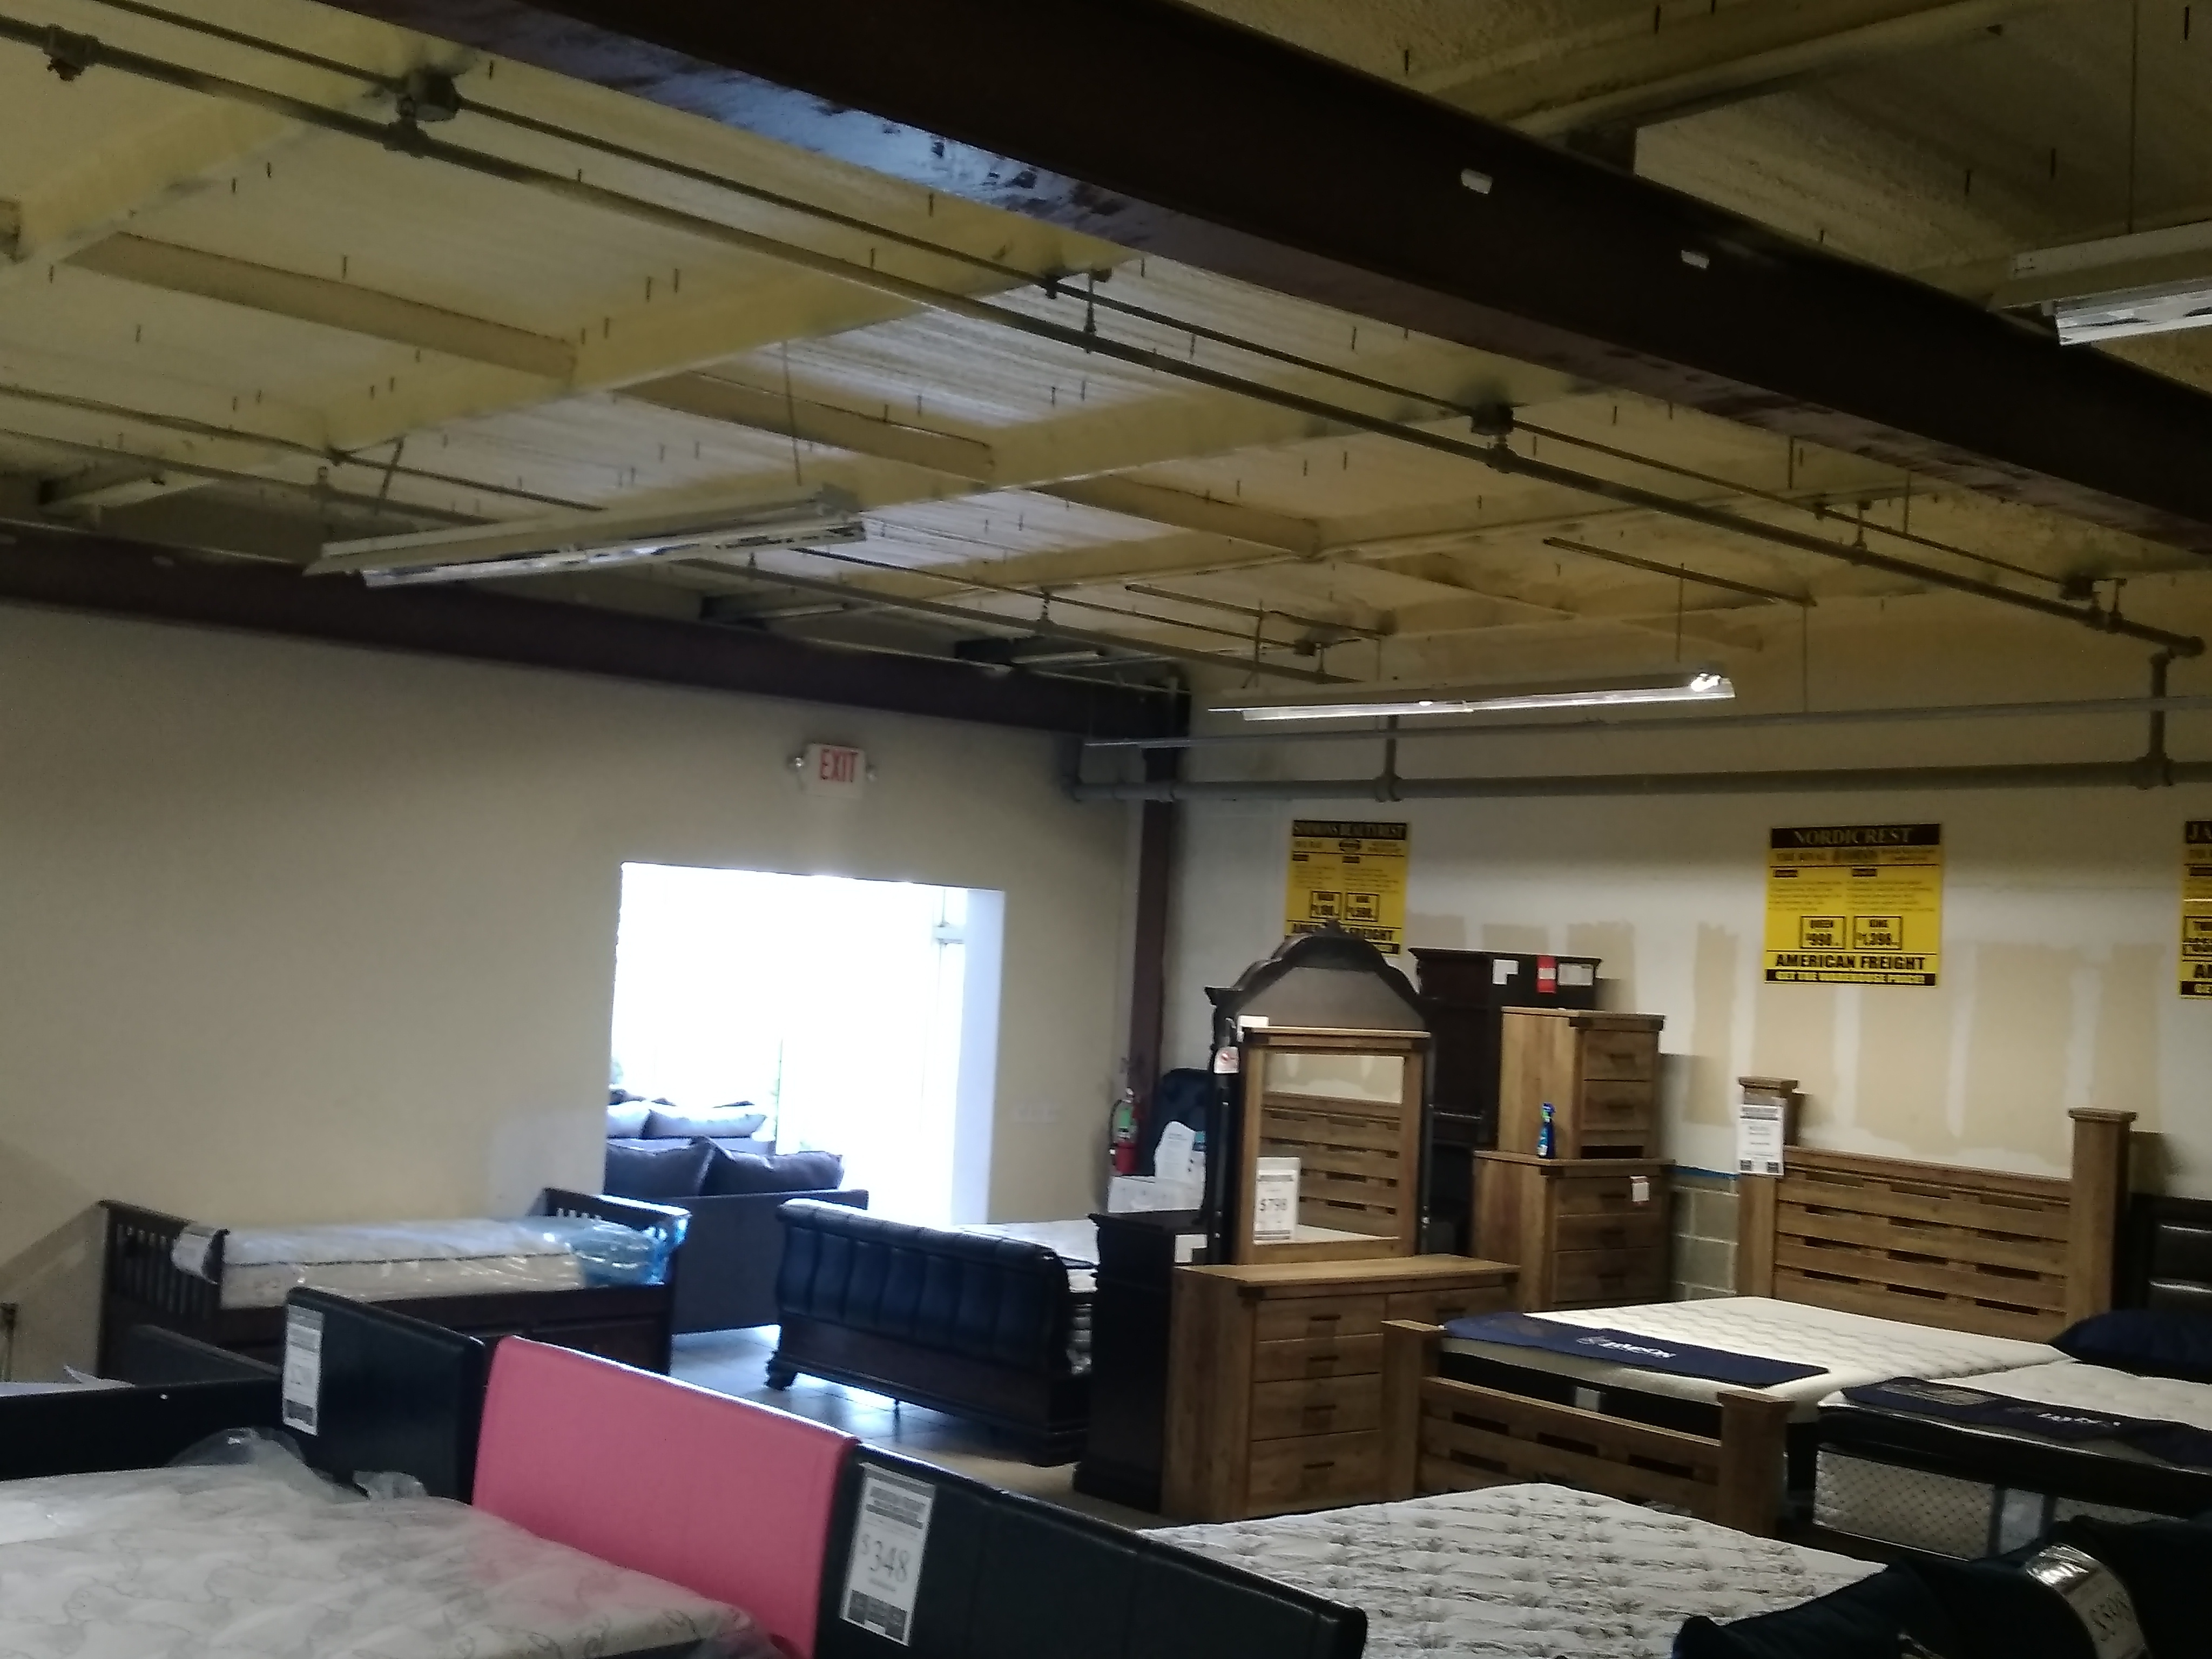 American Freight Furniture And Mattress 3409 N I 10 Service Rd W, Metairie,  LA 70002   YP.com